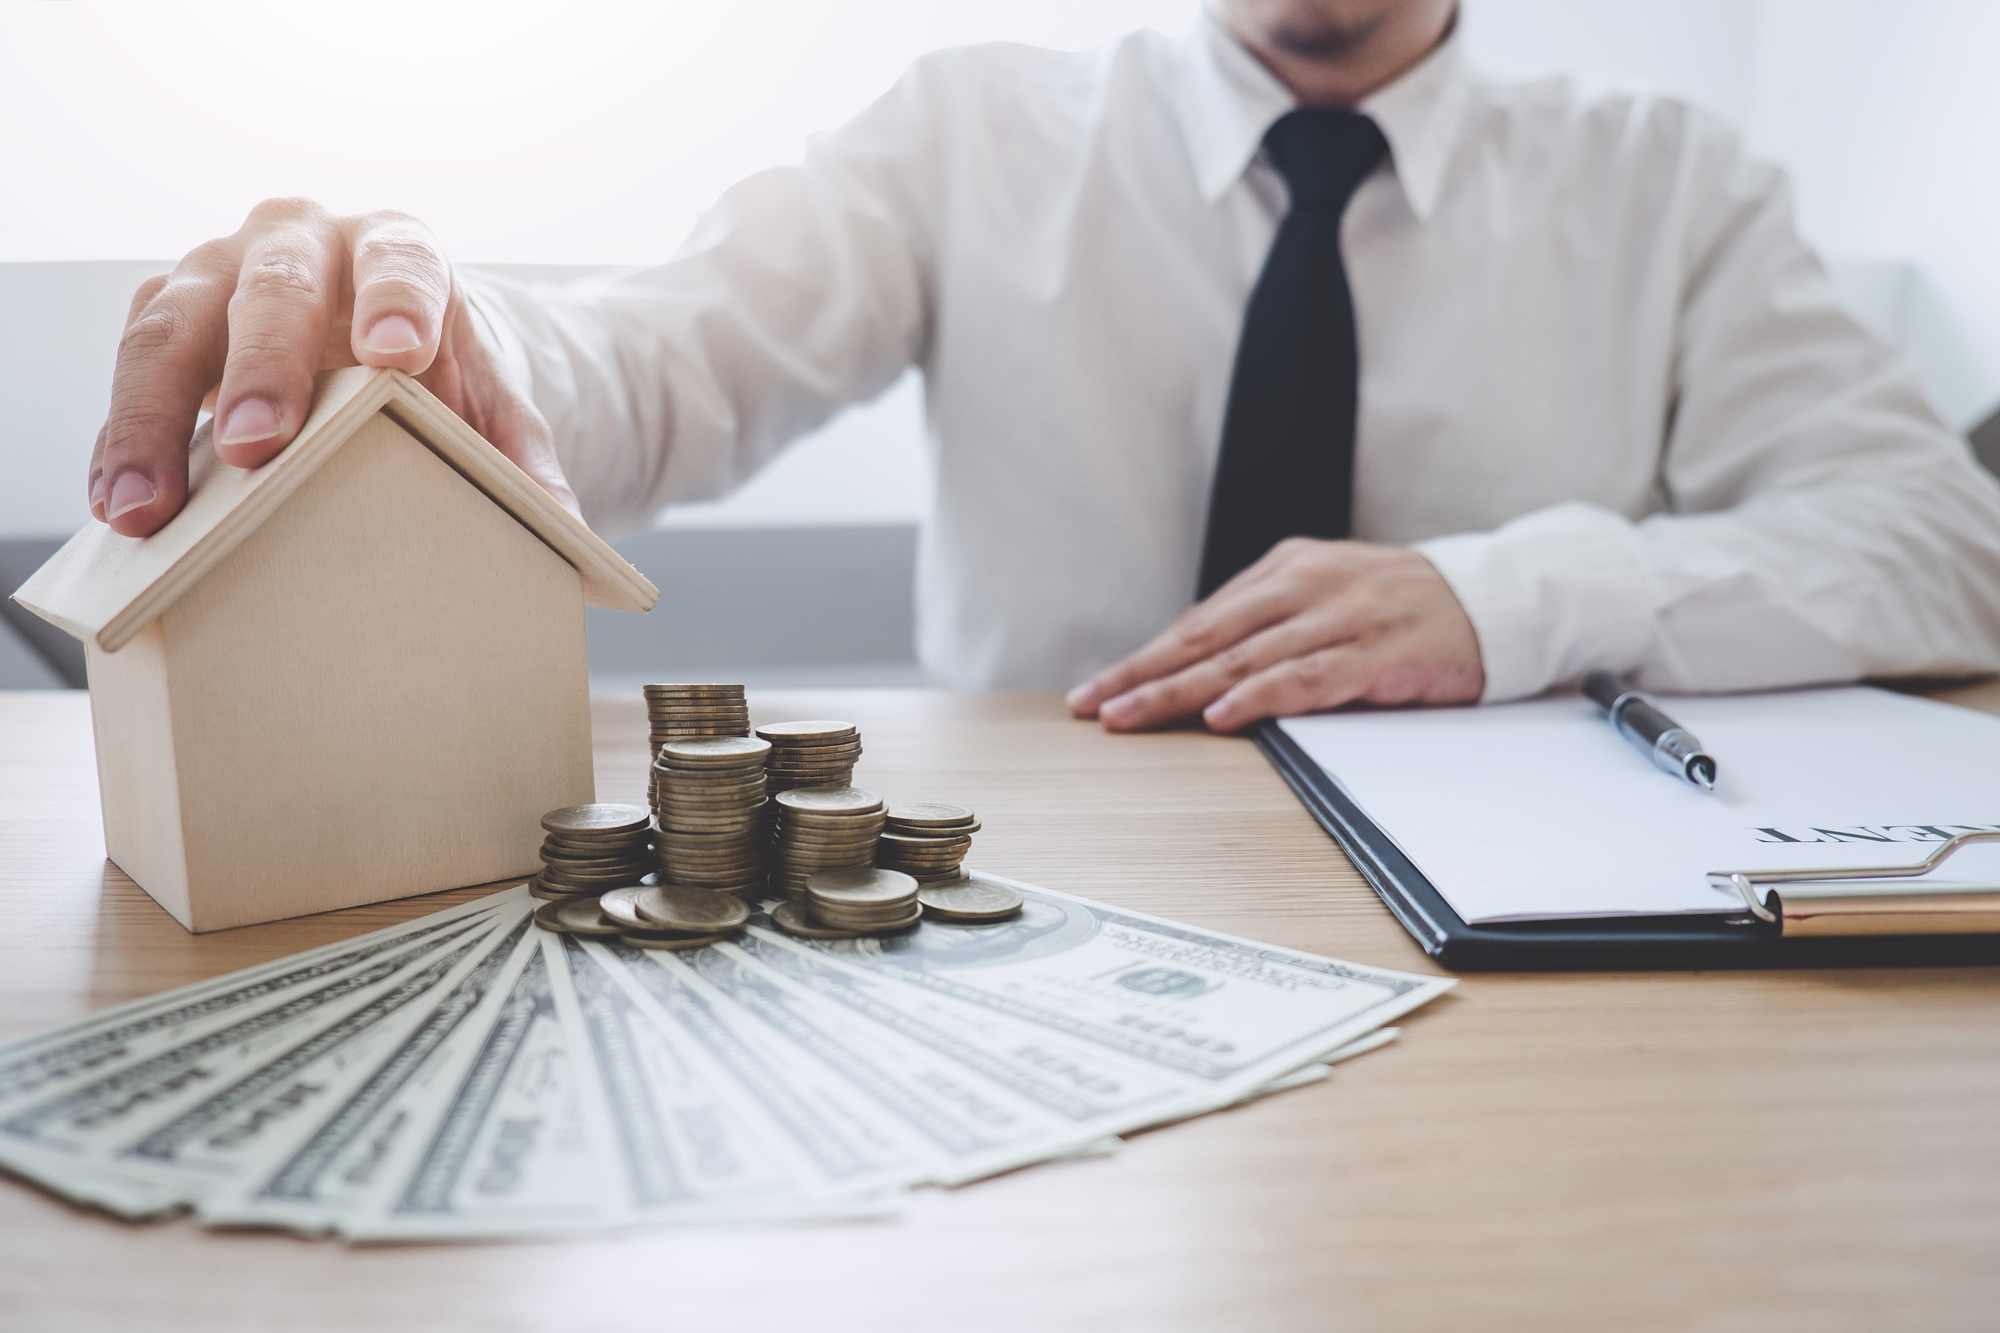 Business Financing Accounting Banking Concept, businessman doing finances and calculate about cost to real estate investment, Concept mortgage loan approval